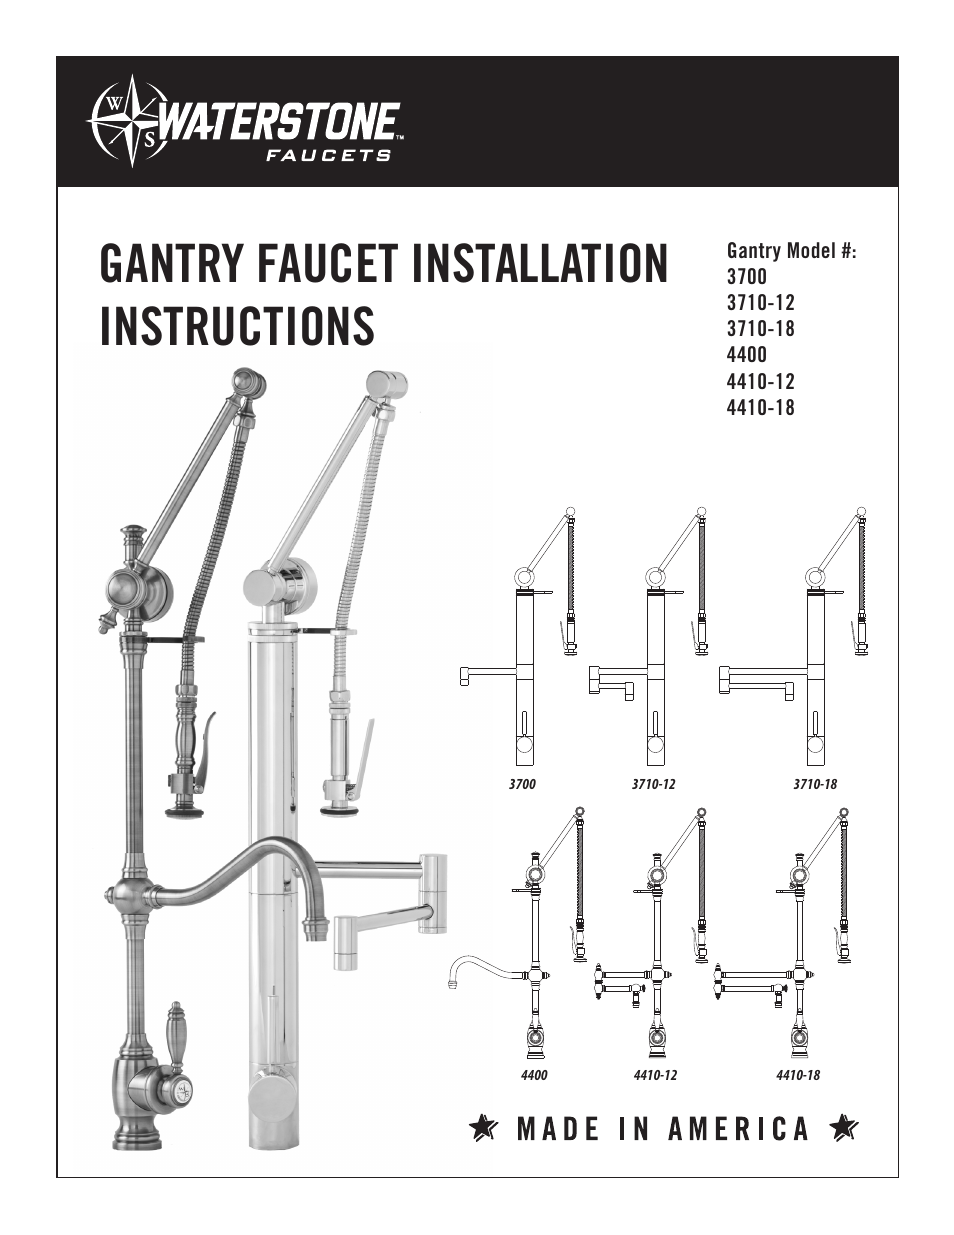 Waterstone GANTRY FAUCET 4410-18 User Manual | 6 pages | Also for ...